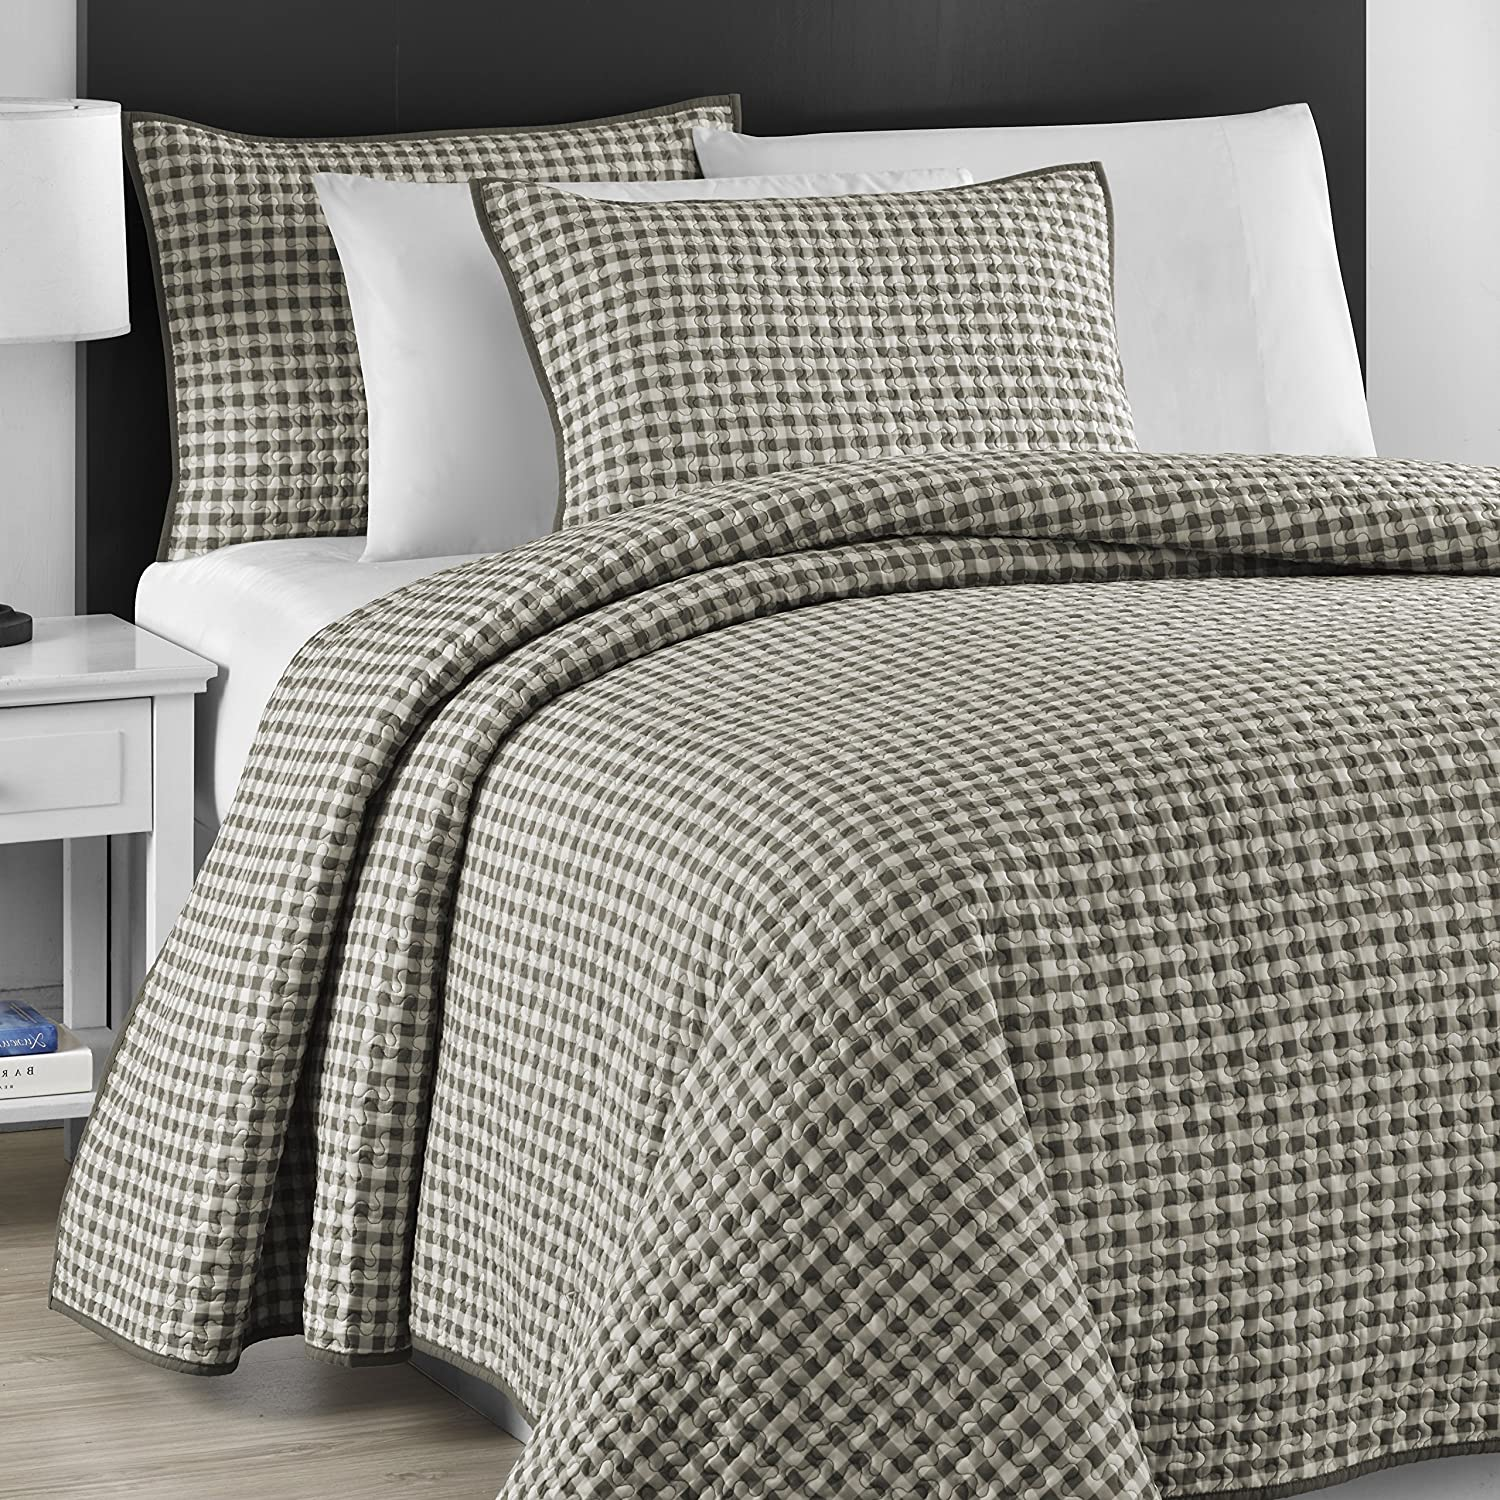 Comfy Bedding Jigsaw Quilted Gray & Off White Checkered 3-piece Bedspread Coverlet Set